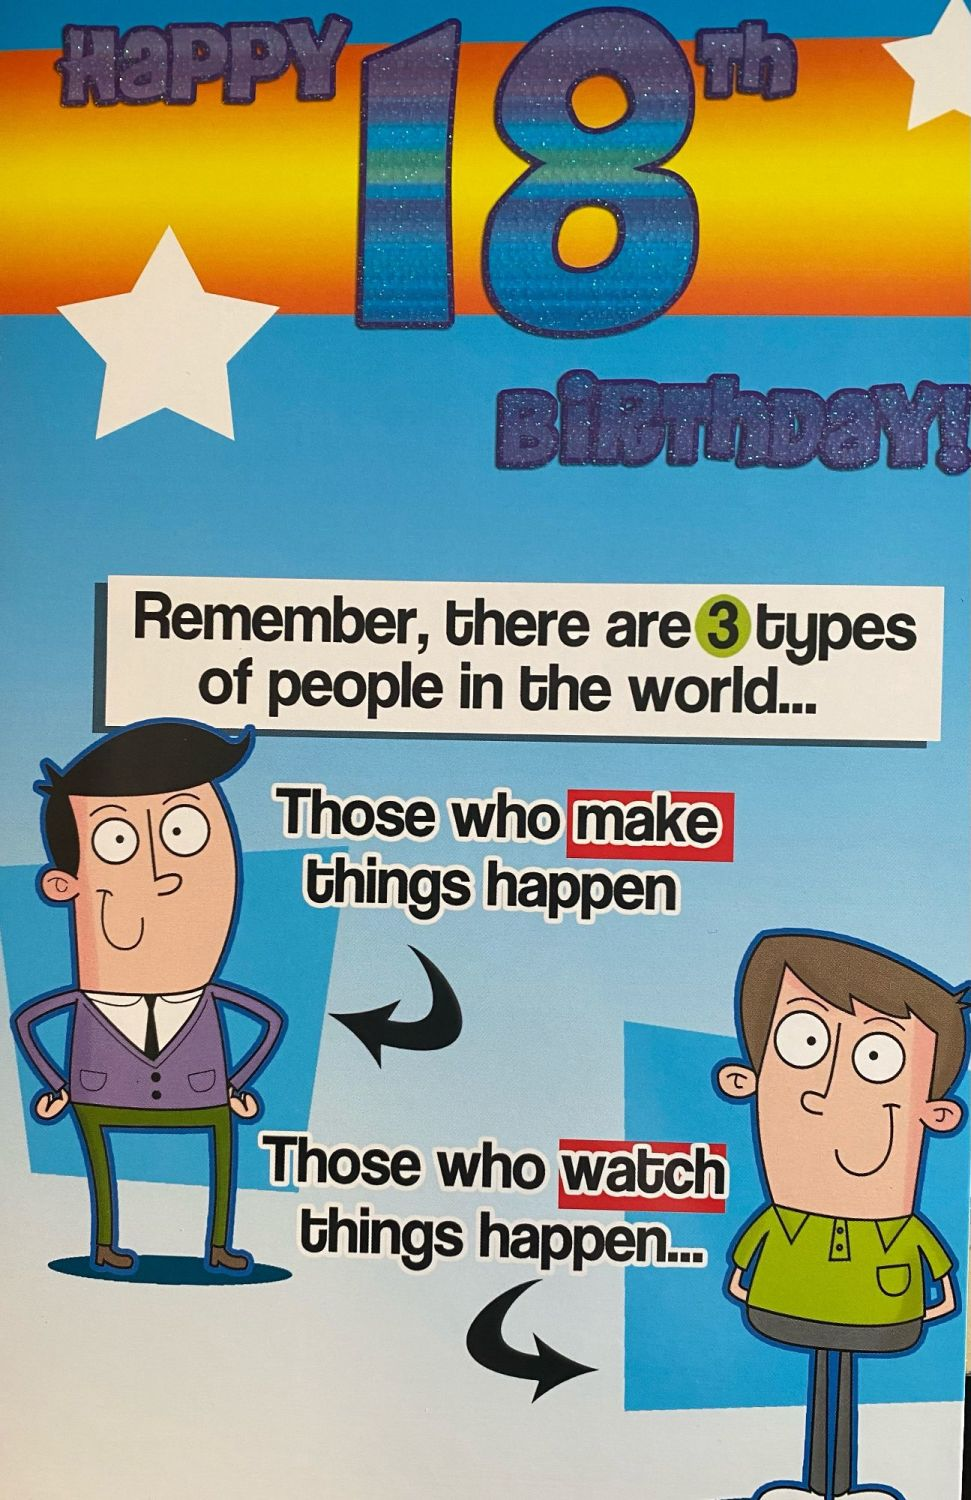 Happy 18th Birthday Remember, there are 3 types of people in the world...